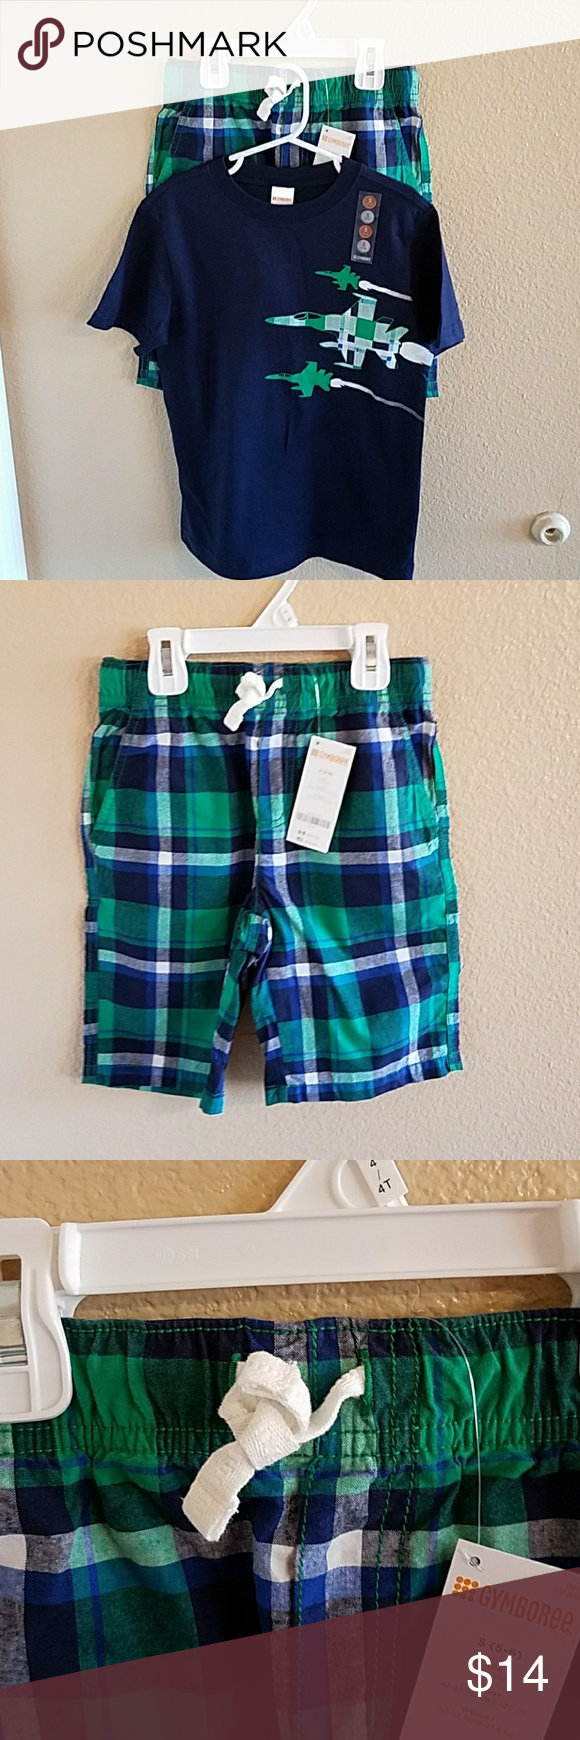 Gymboree Boys NWT Shirt & Short Set Sz 5/6 Adorable NWT Navy Blue, Green, and White Boys T Shirt and Plaid Shorts Size Small 5/6 Navy Blue T Shirt with Iron On Jet Planes  Matching Plaid Shorts with Pockets on Front and Back Stretchy Comfy Waistband with Adjustable Tie Waistband Gymboree Matching Sets